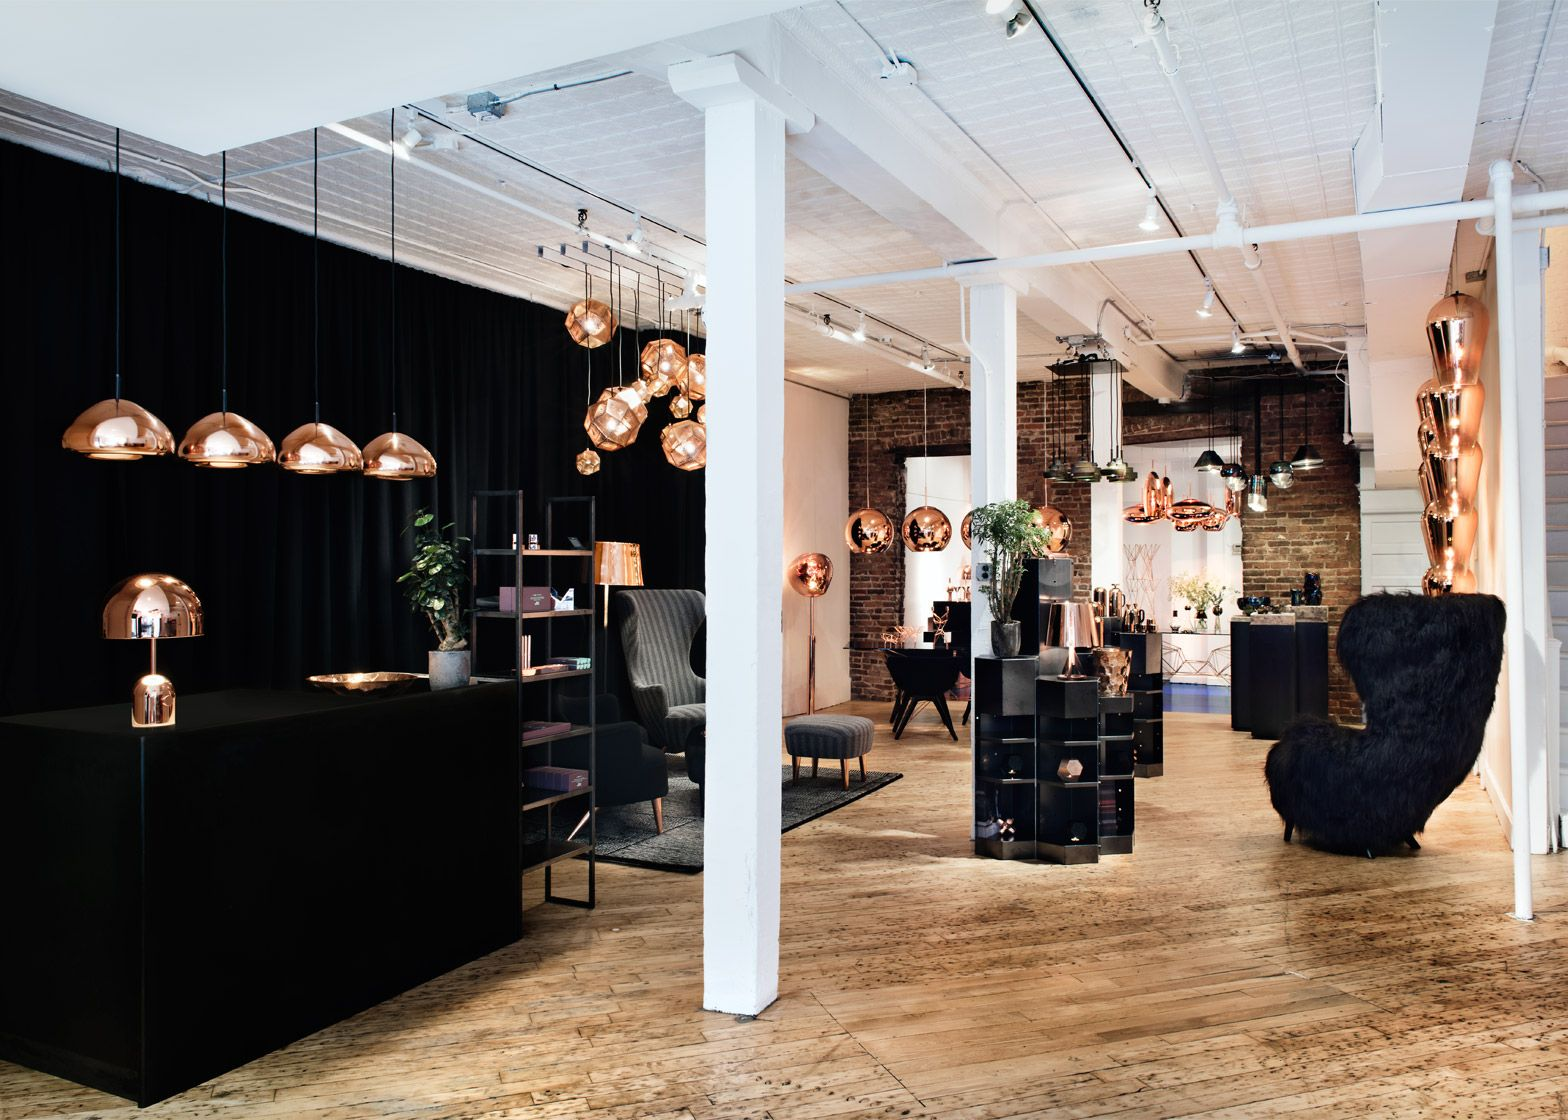 Tom Dixon's Howard Street store in SoHo includes a furry room